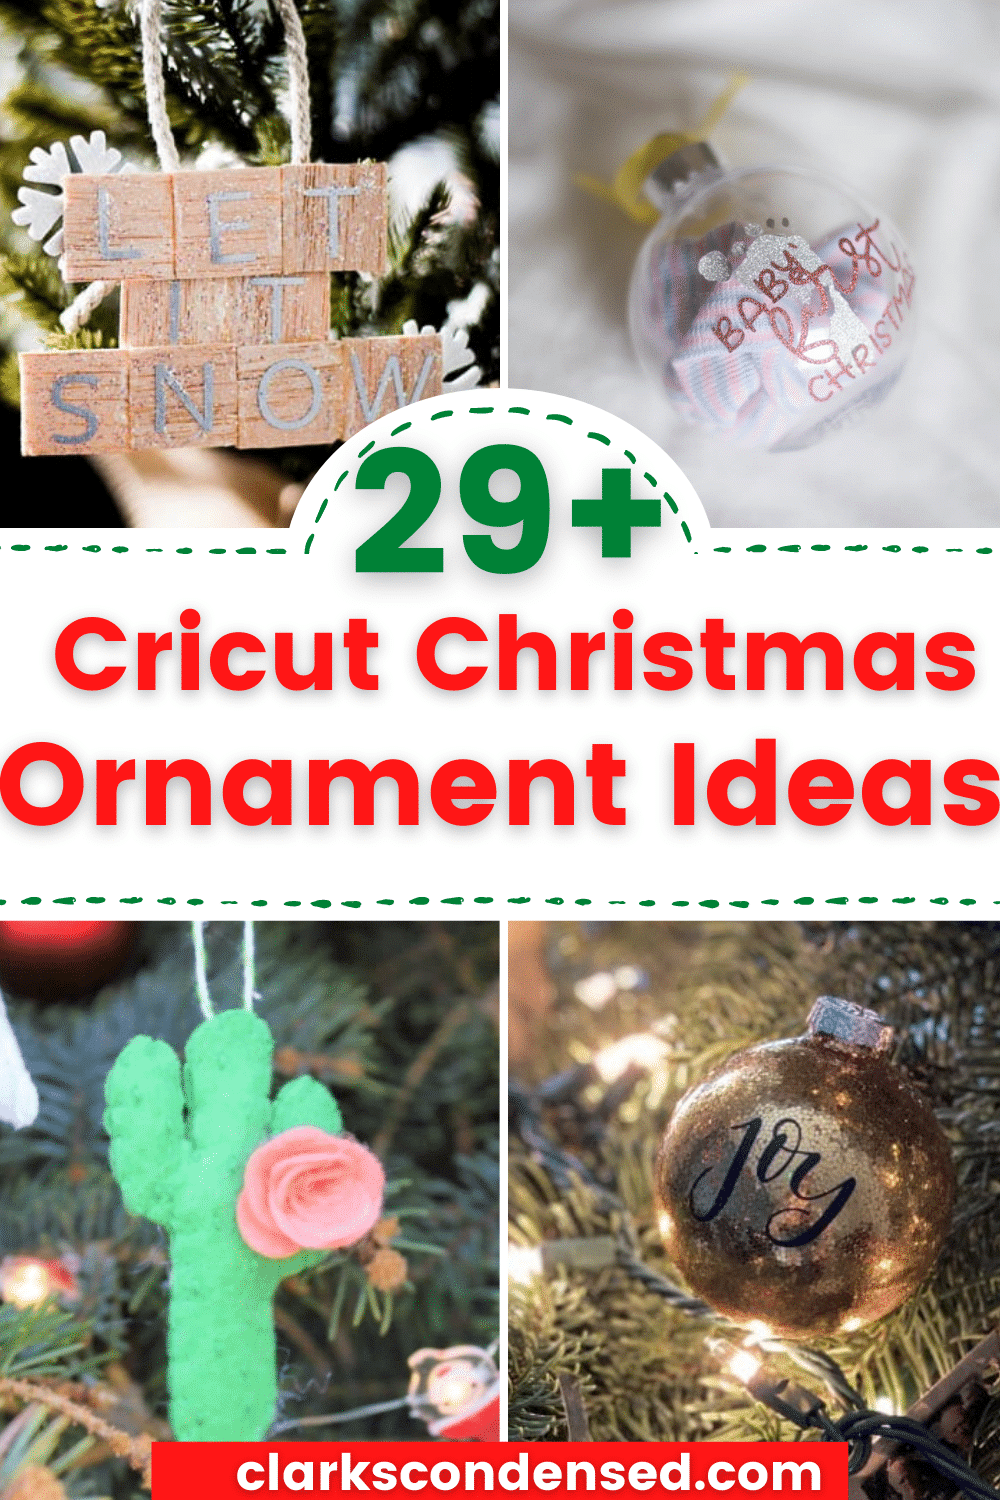 Over 28 fun and creative Cricut Ornament Ideas to decorate your Christmas tree with this year! #cricut #christmas #cricutmade #cricutcreated #cricutmaker #cricutexploreair2 via @clarkscondensed